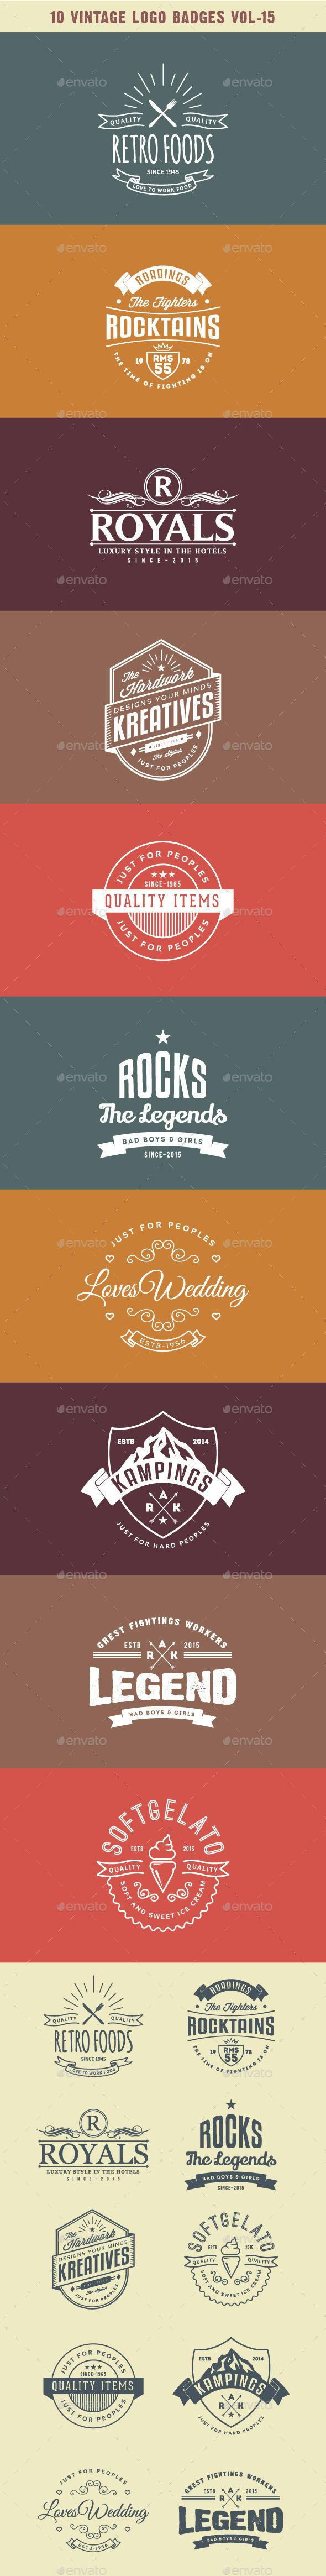 10 Vintage Logo Badges #logo #badges #design Download: http://graphicriver.net/item/10-vintage-logo-badges-vol15/10646510?ref=ksioks